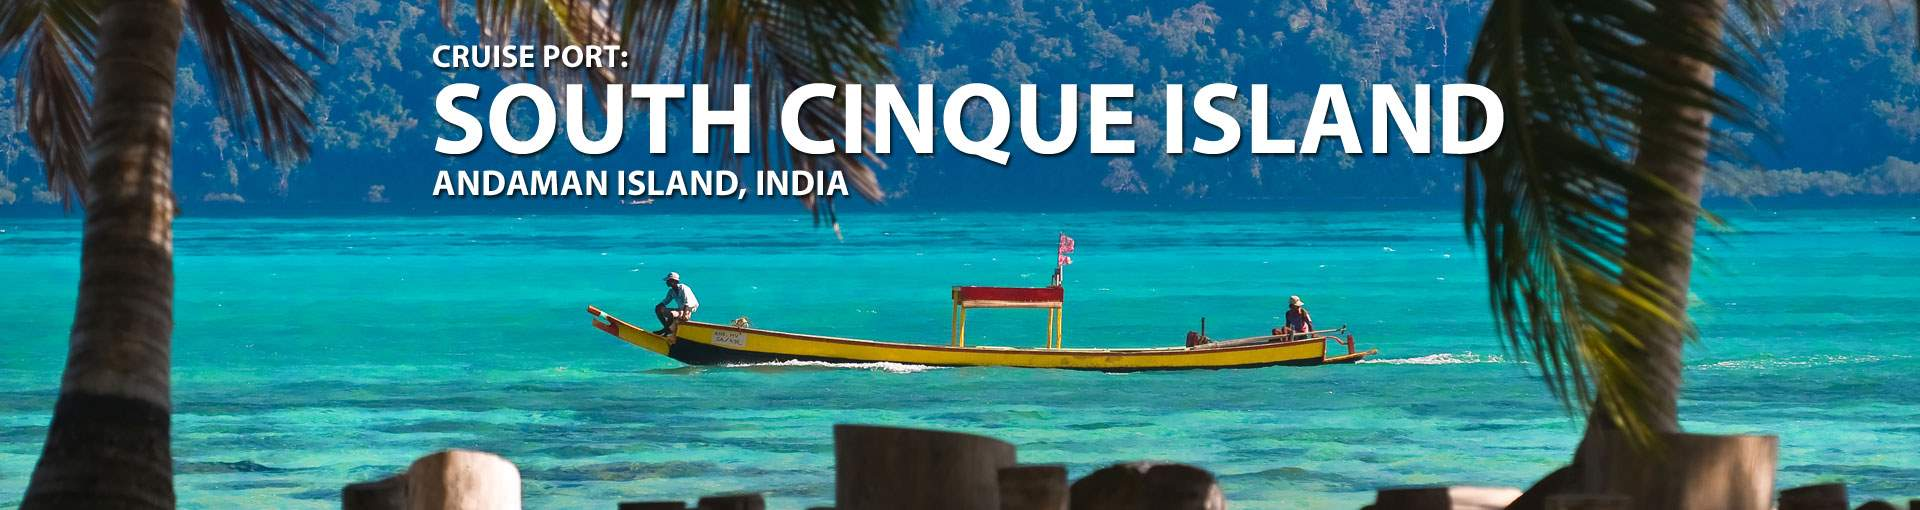 Cruises to South Cinque Isl, Andaman Isl, India